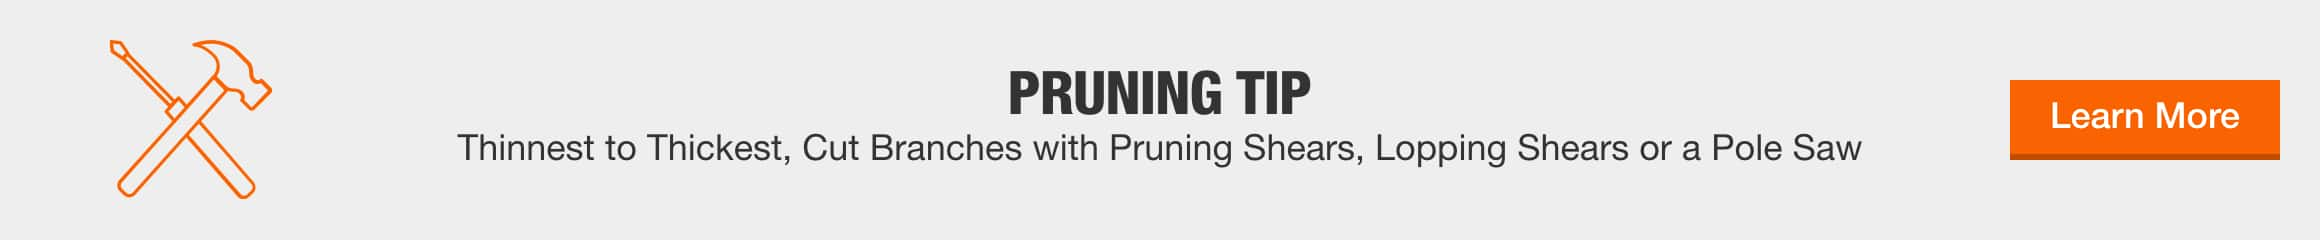 Pruning Tip - Thinnest to thickest, cut branches with pruning shears, lopping shears or a pole saw.